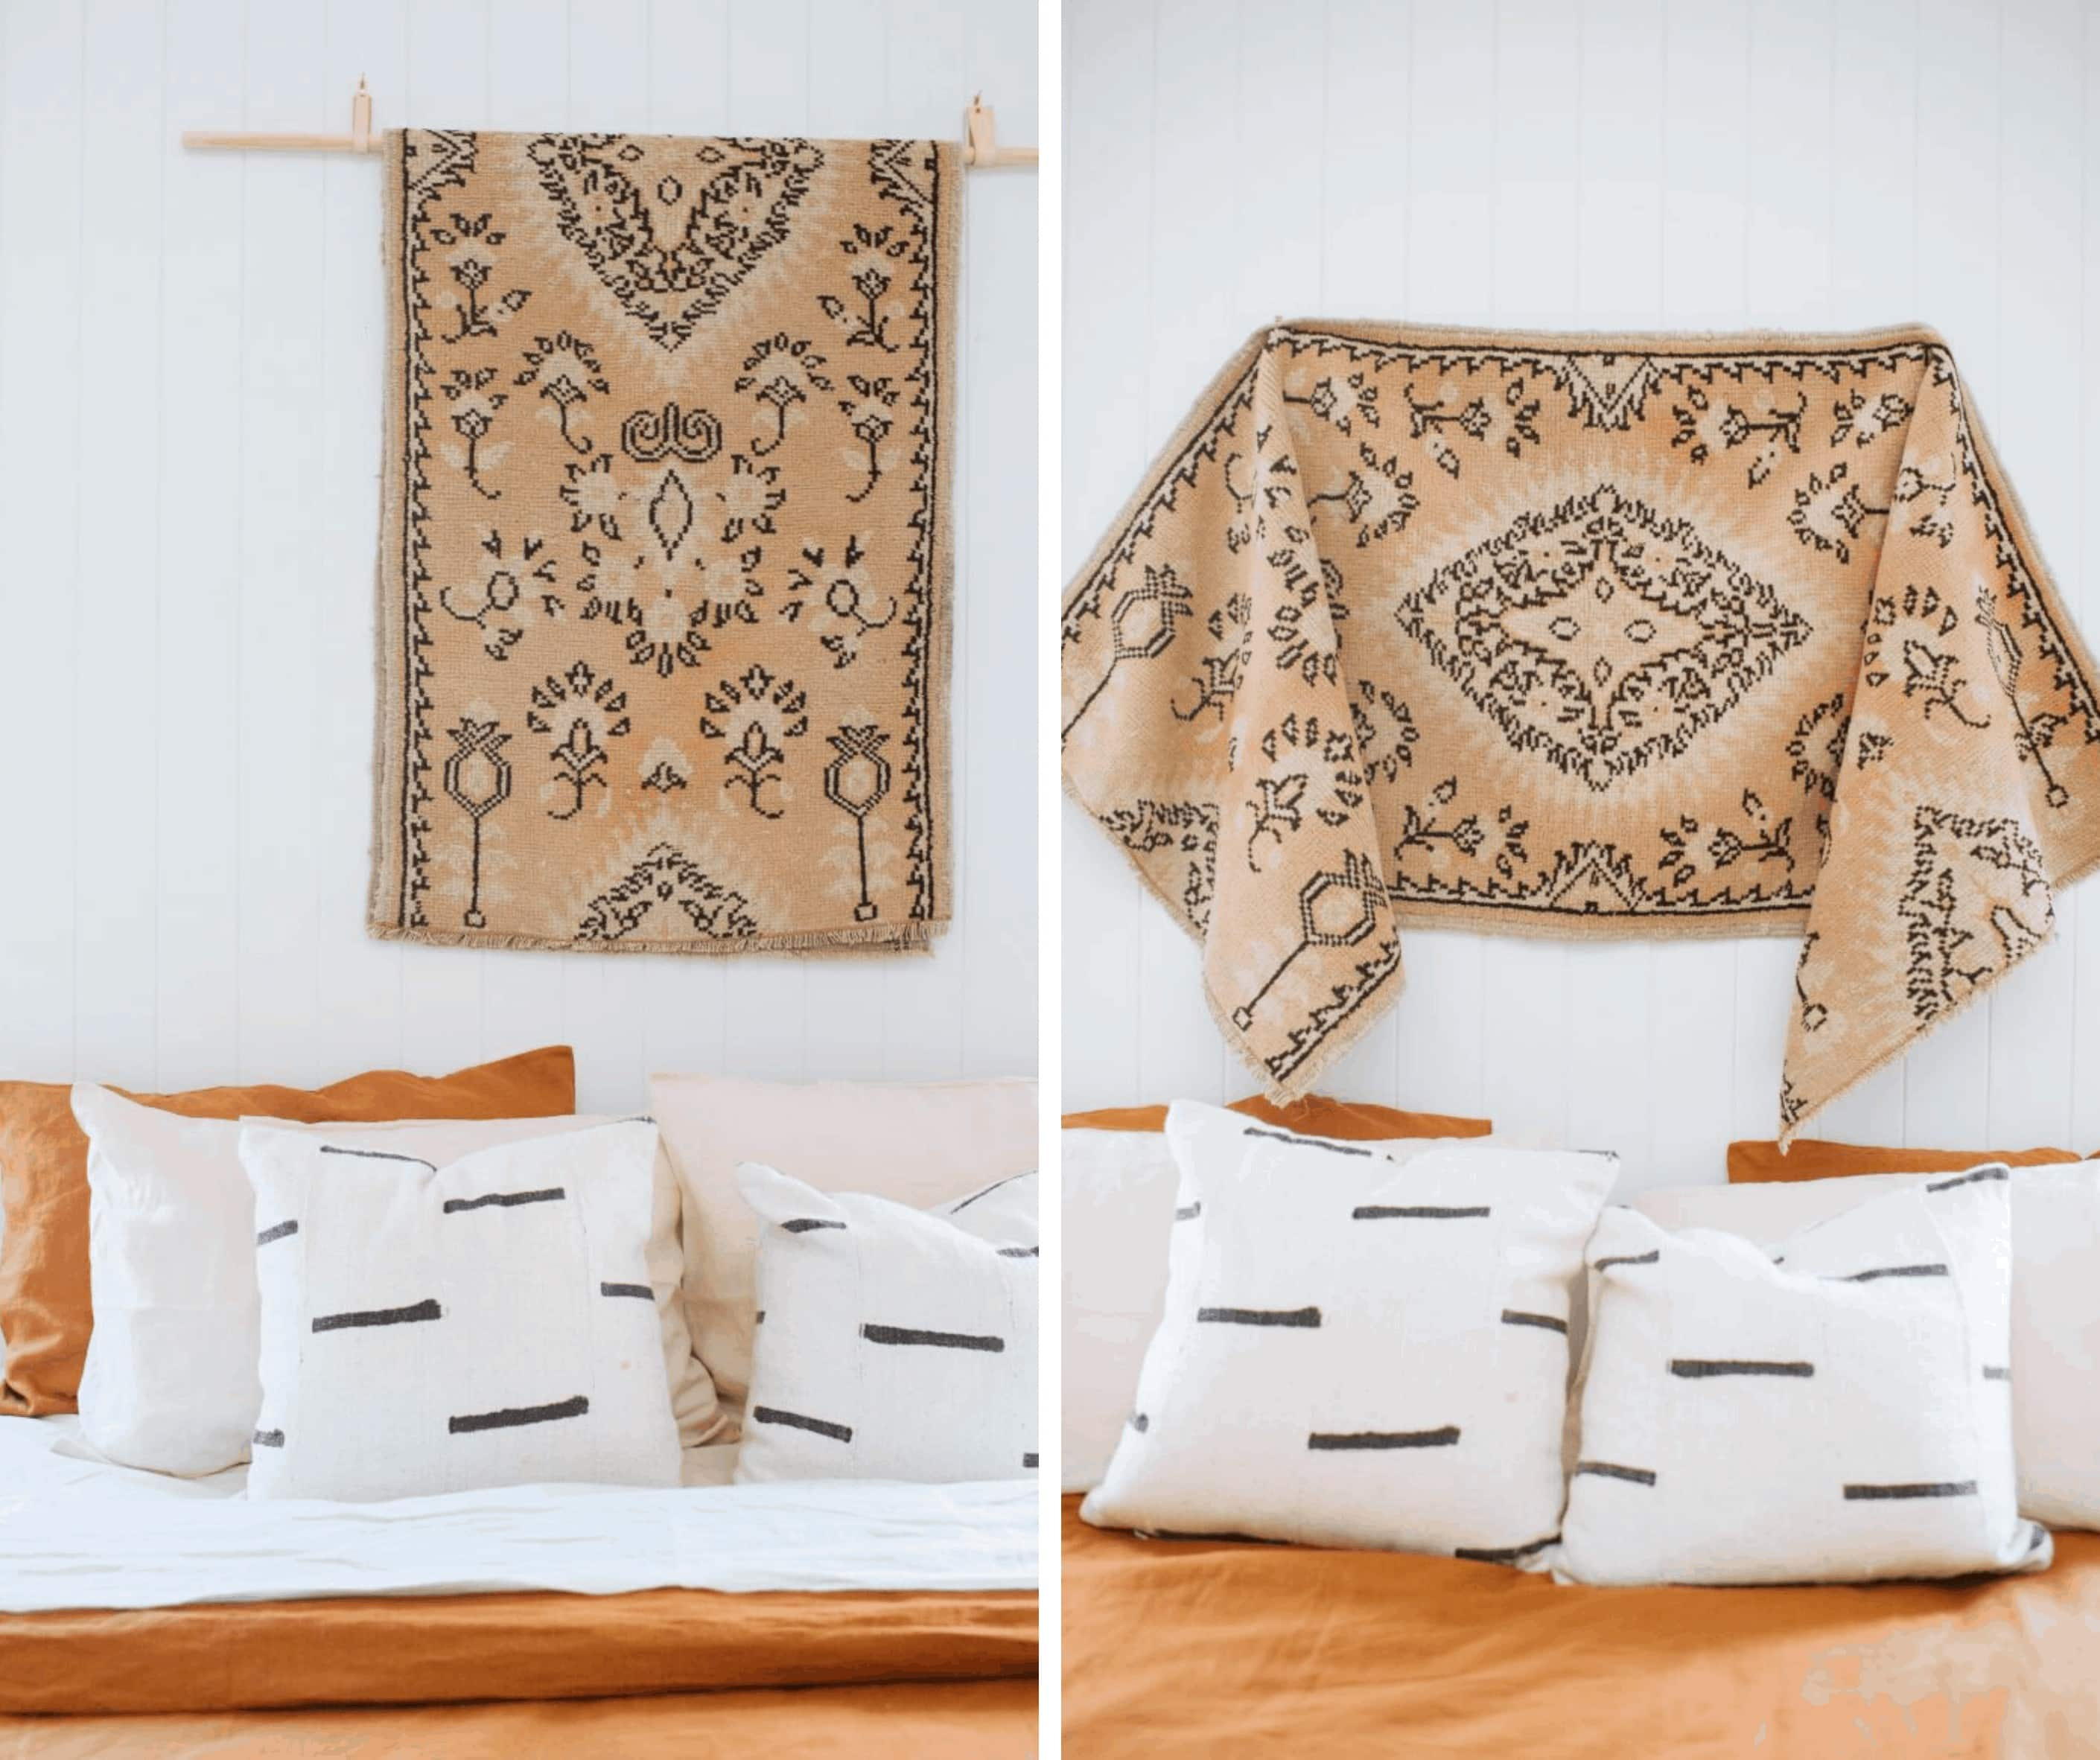 moroccan style rug hung on wall above the bed